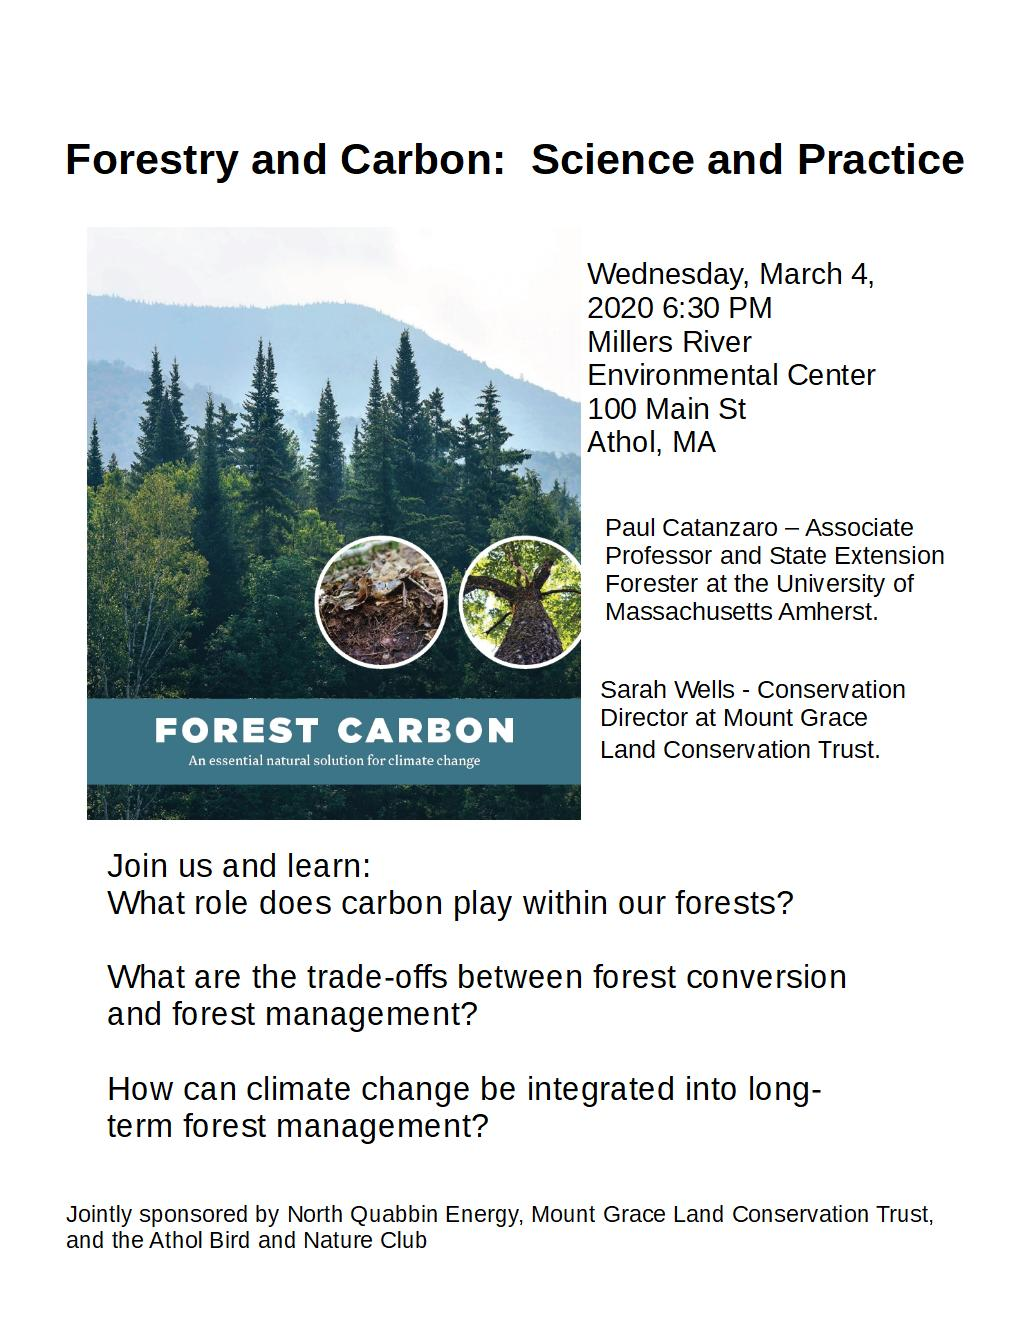 Foresty Carbon Poster